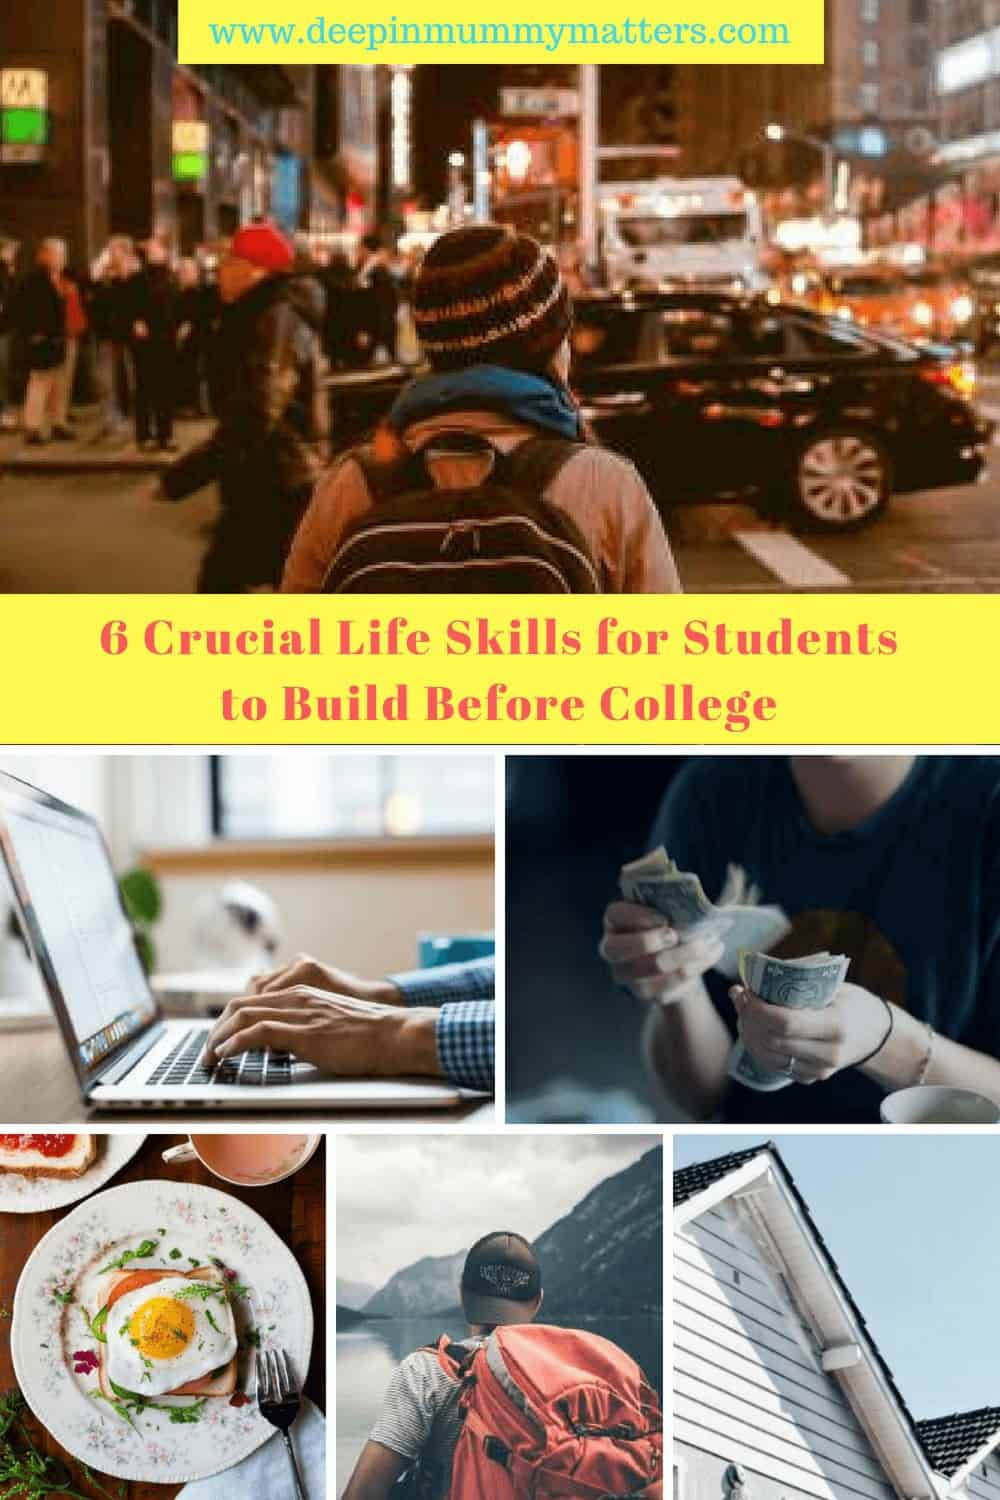 6 Crucial Life Skills for Students to Build Before College